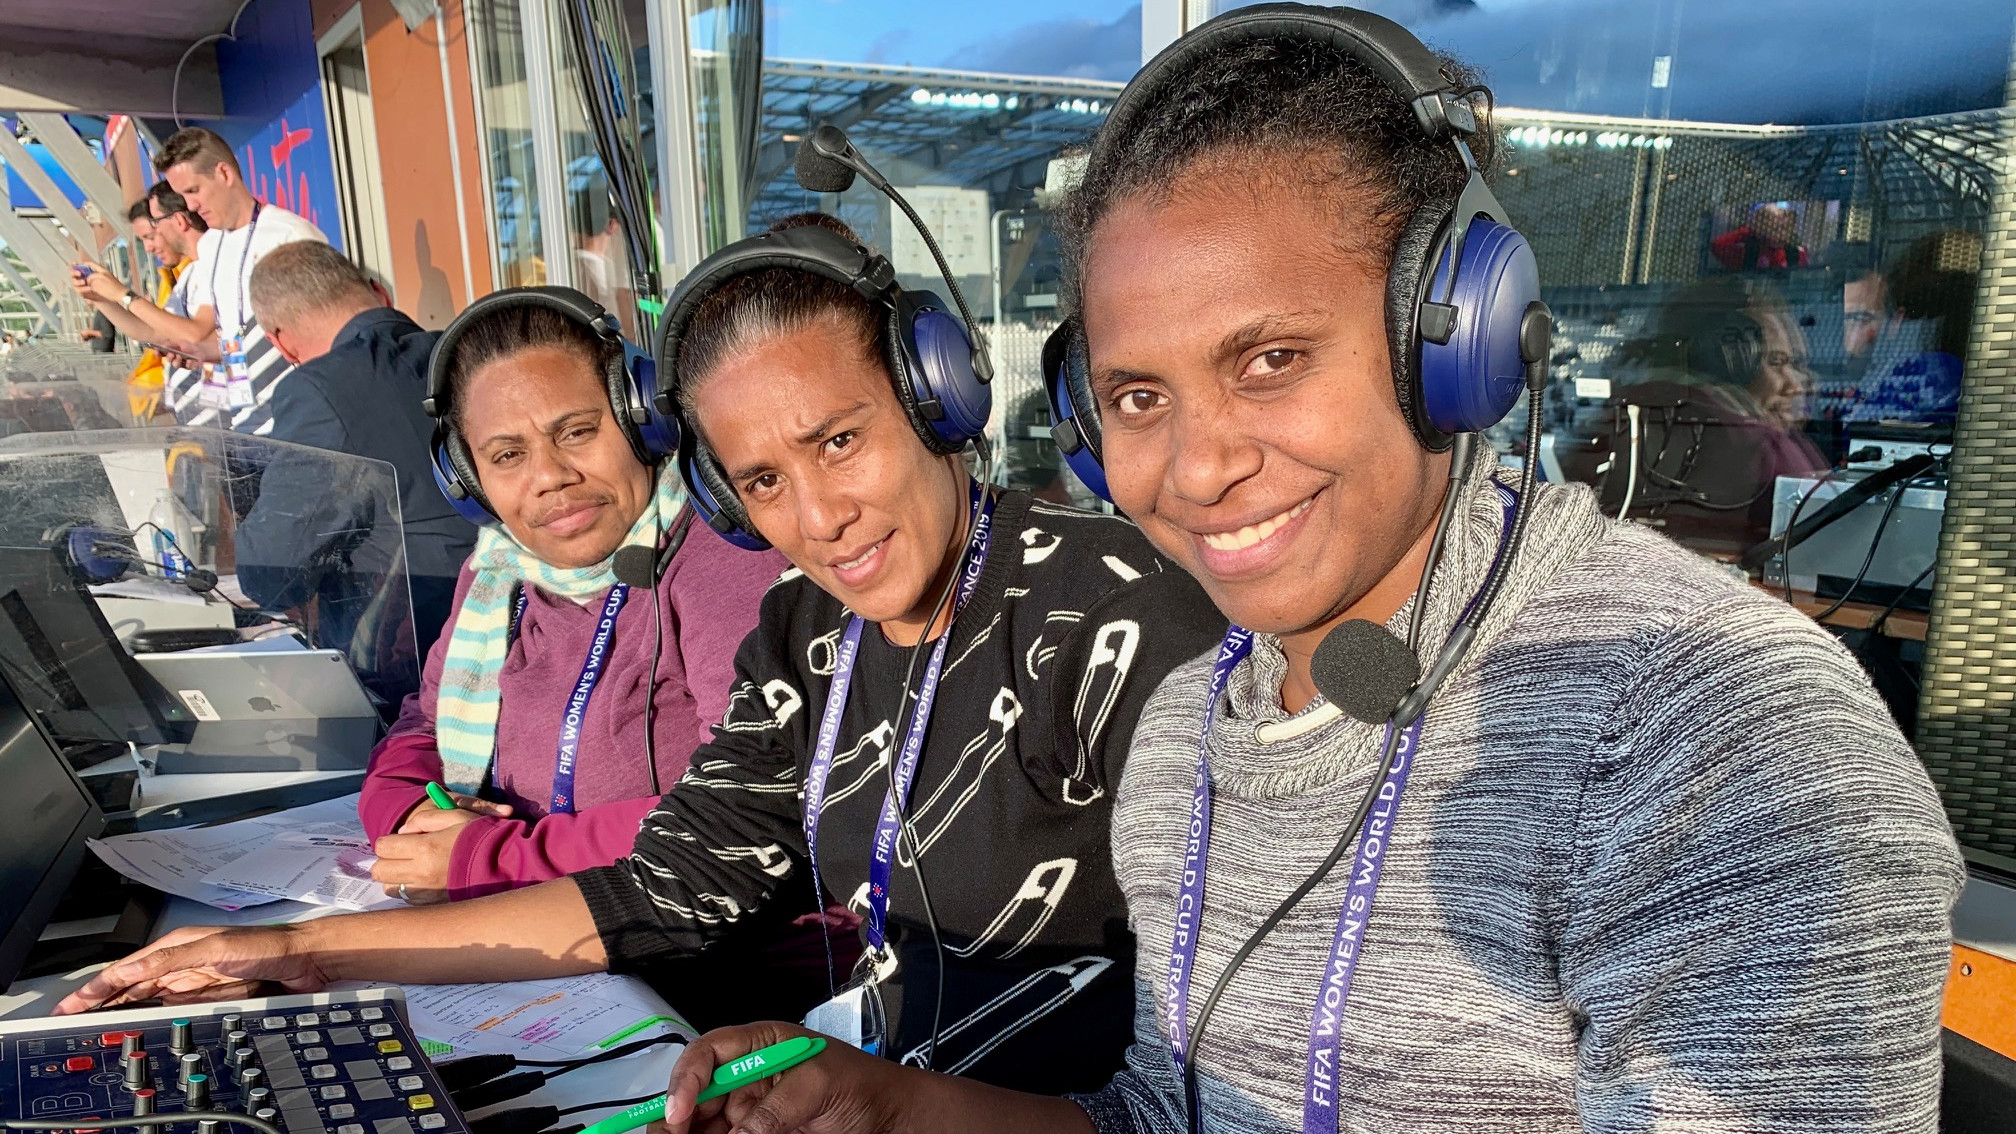 'Commentary for Good' brings underrepresented languages to the Women's World Cup